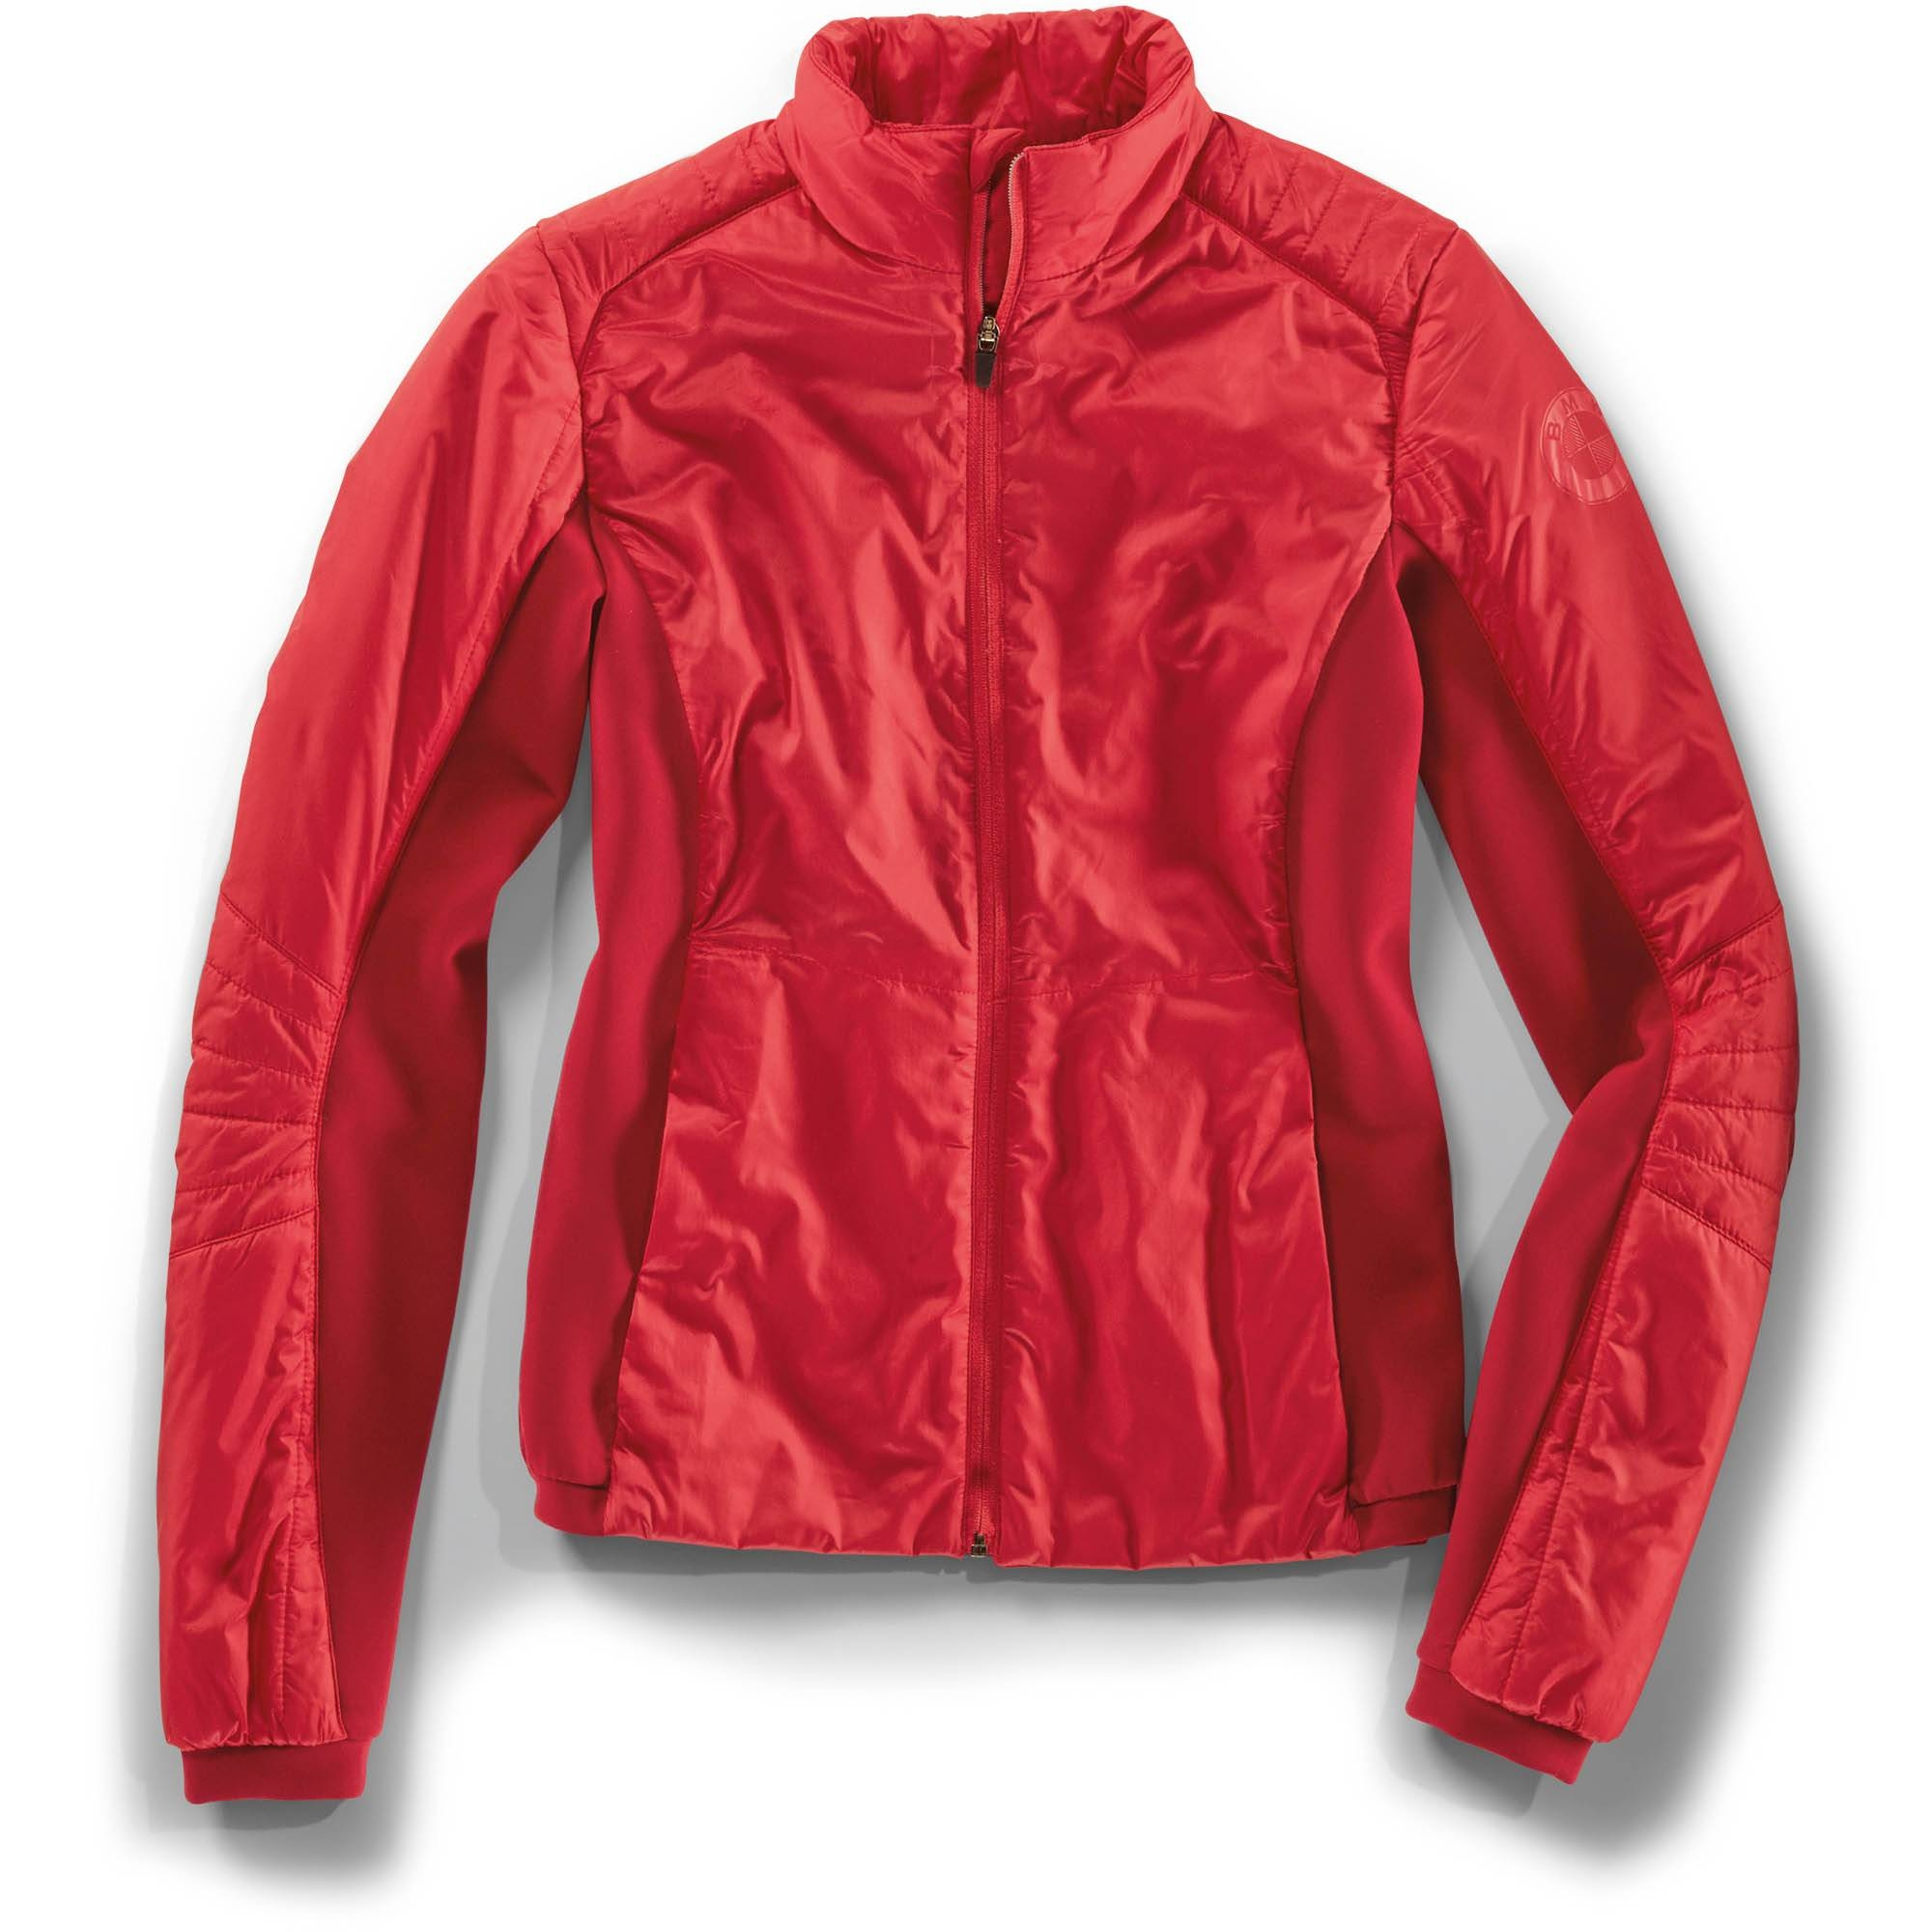 Chaqueta roja mujer RIDE QUILTED